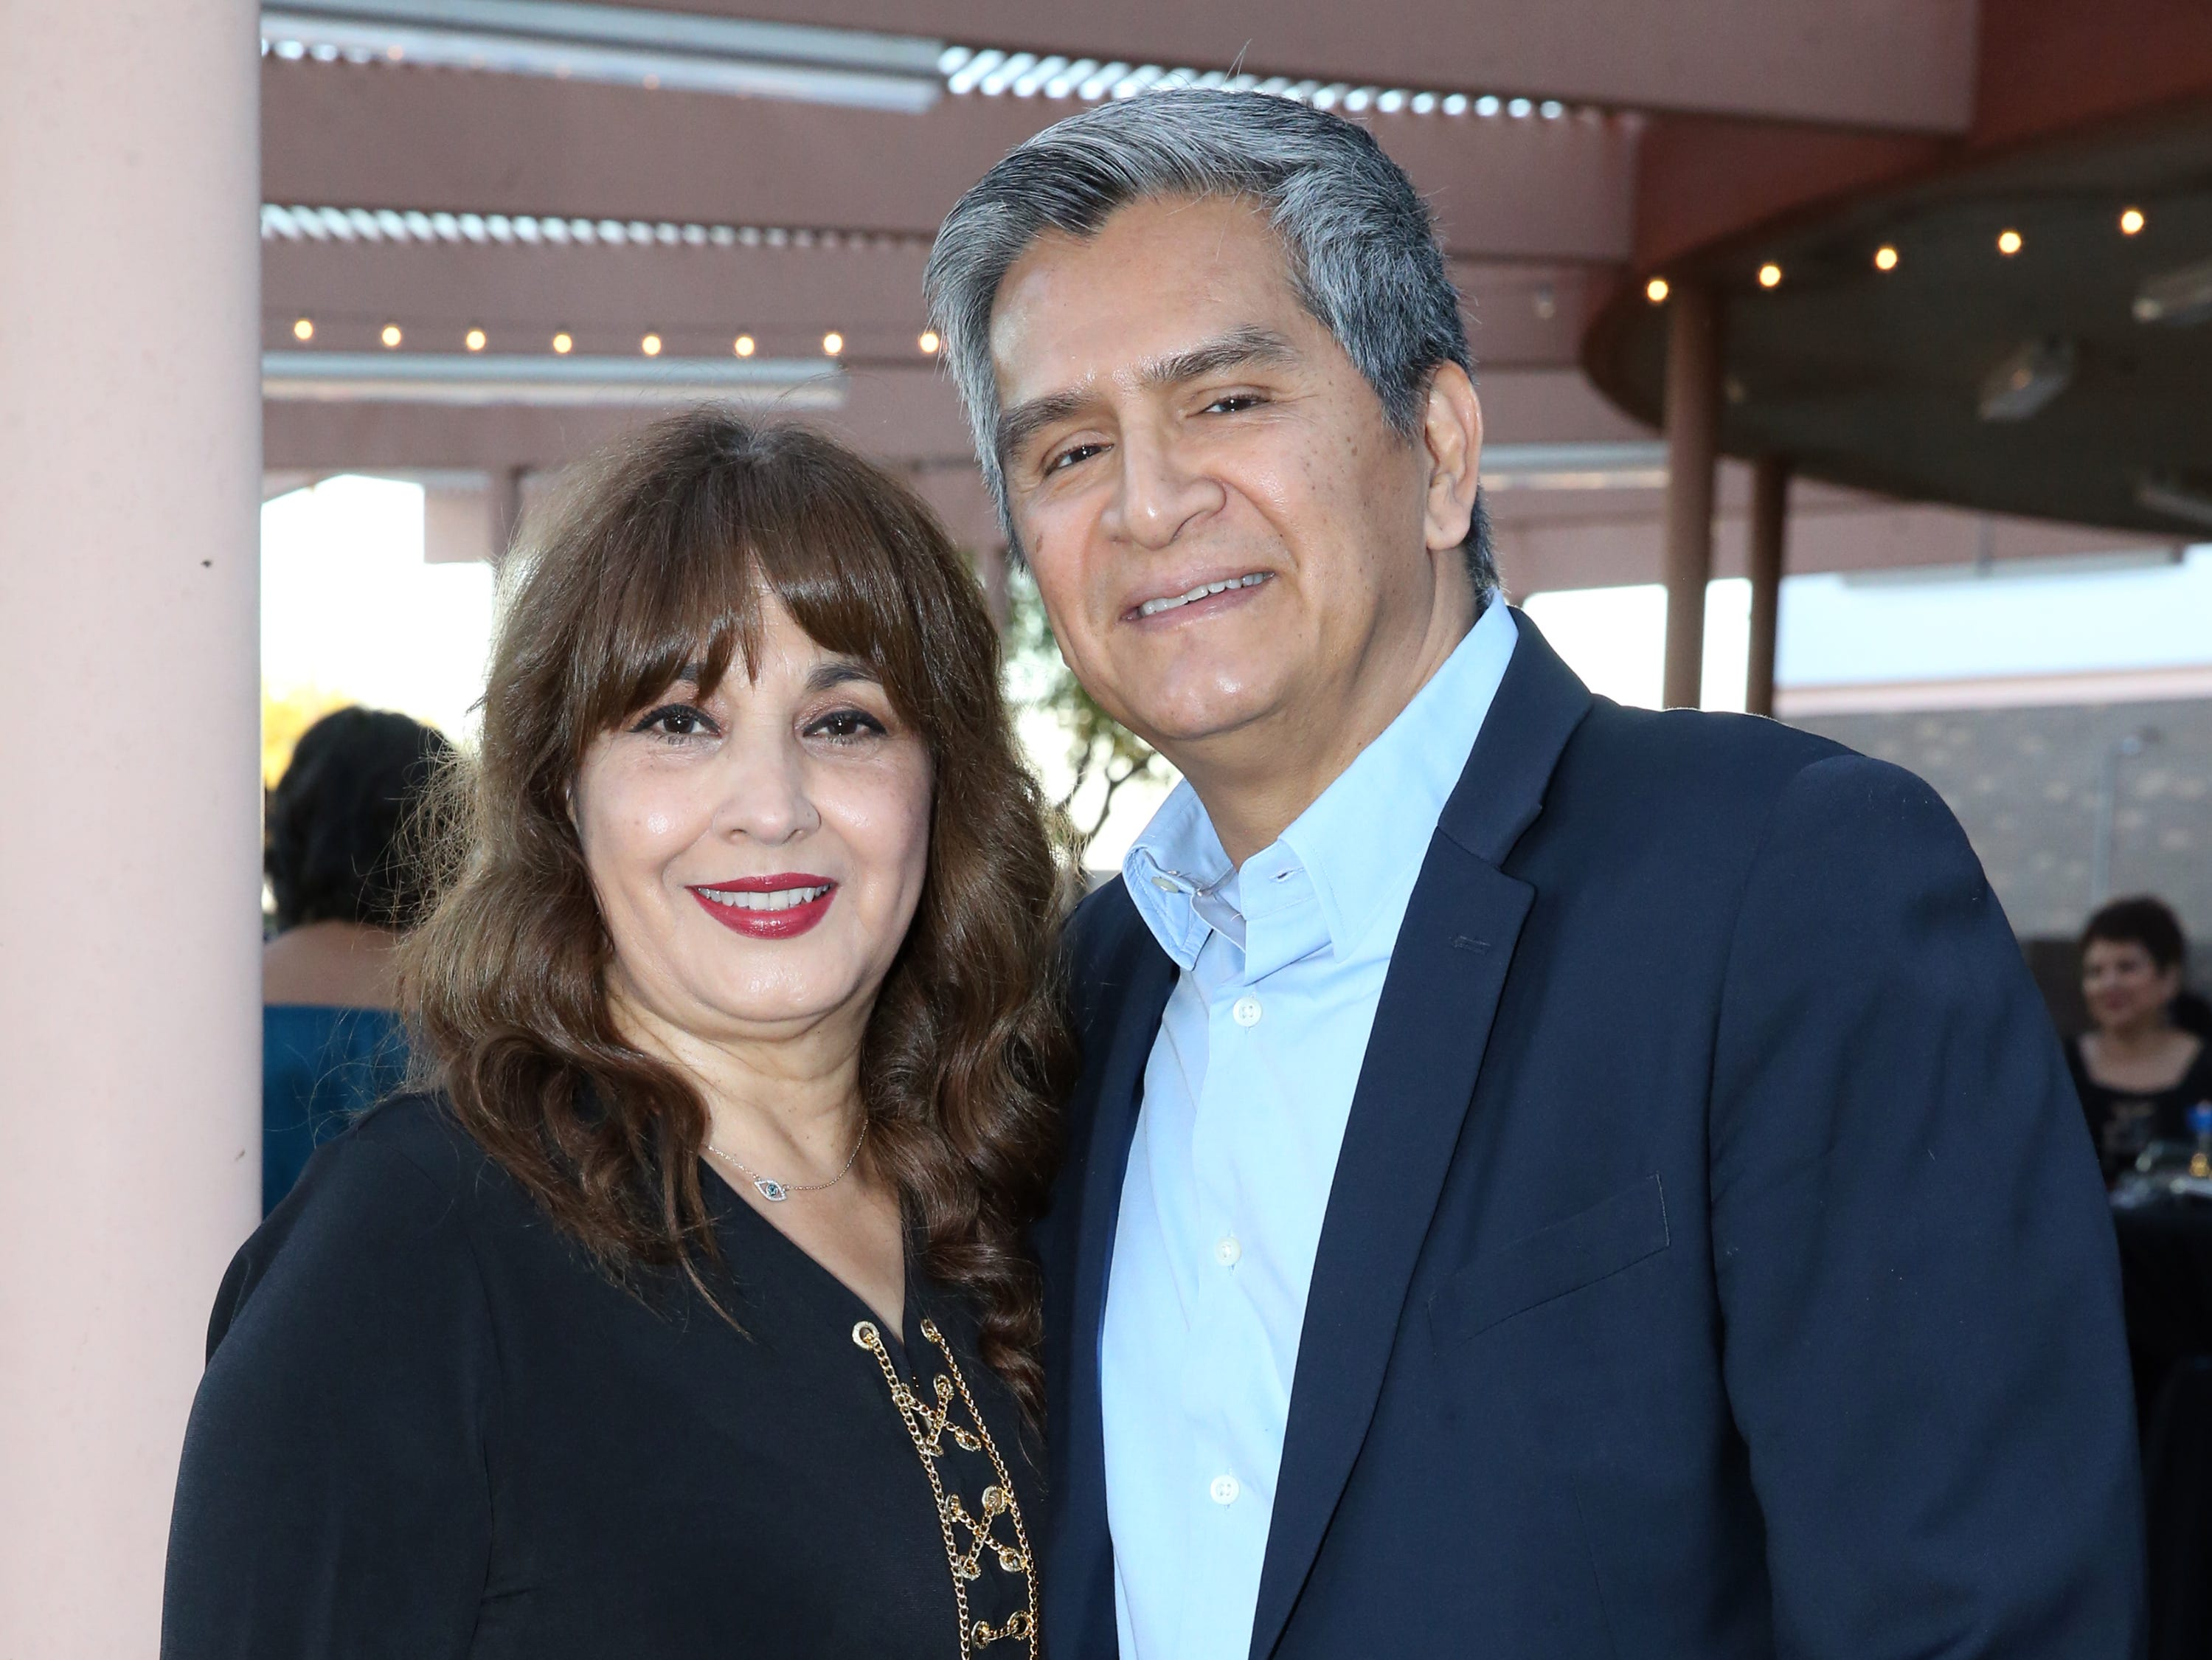 Javier and Leticia Arriaga.